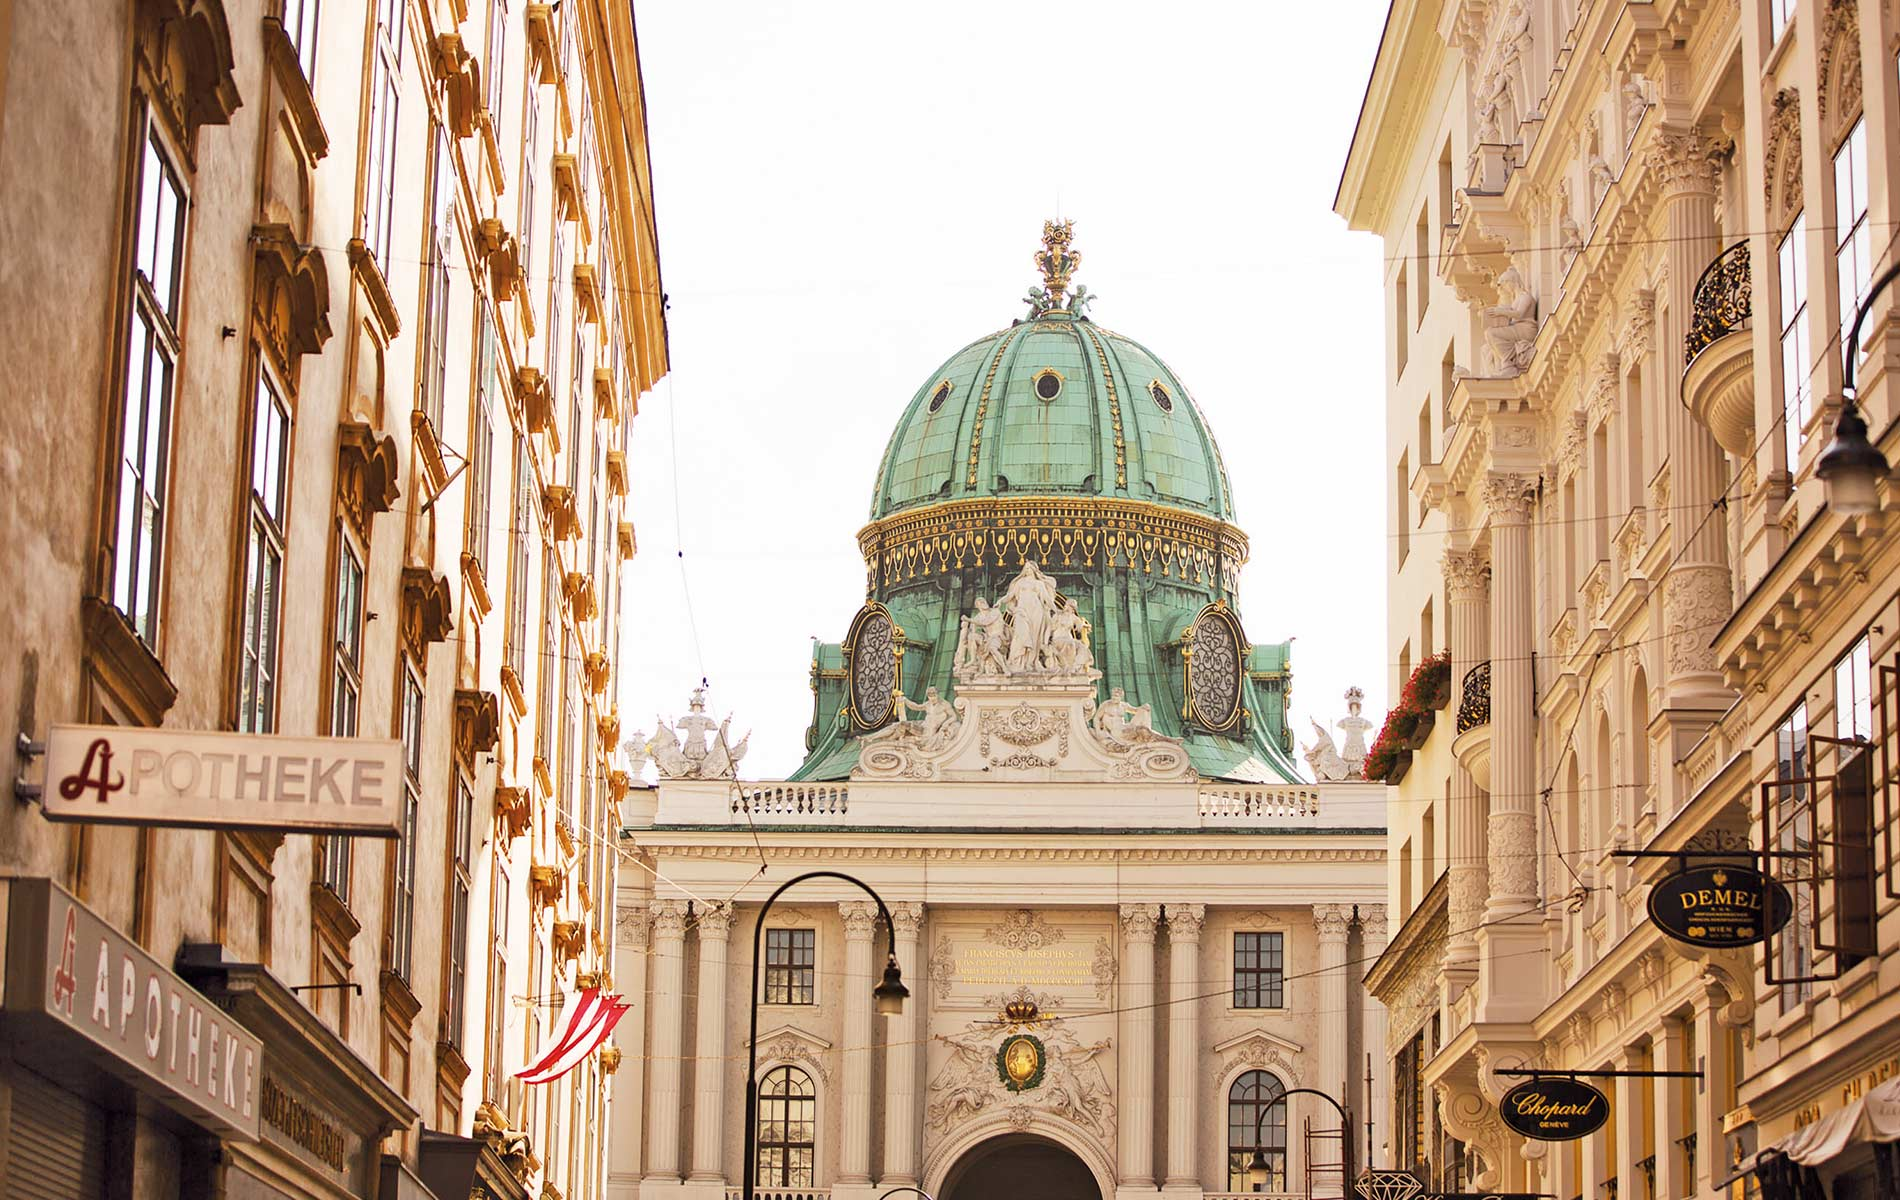 Michaelerkuppel of the Hofburg Imperial Palace in Vienna Austria VIE Magazine Destination Travel 2018